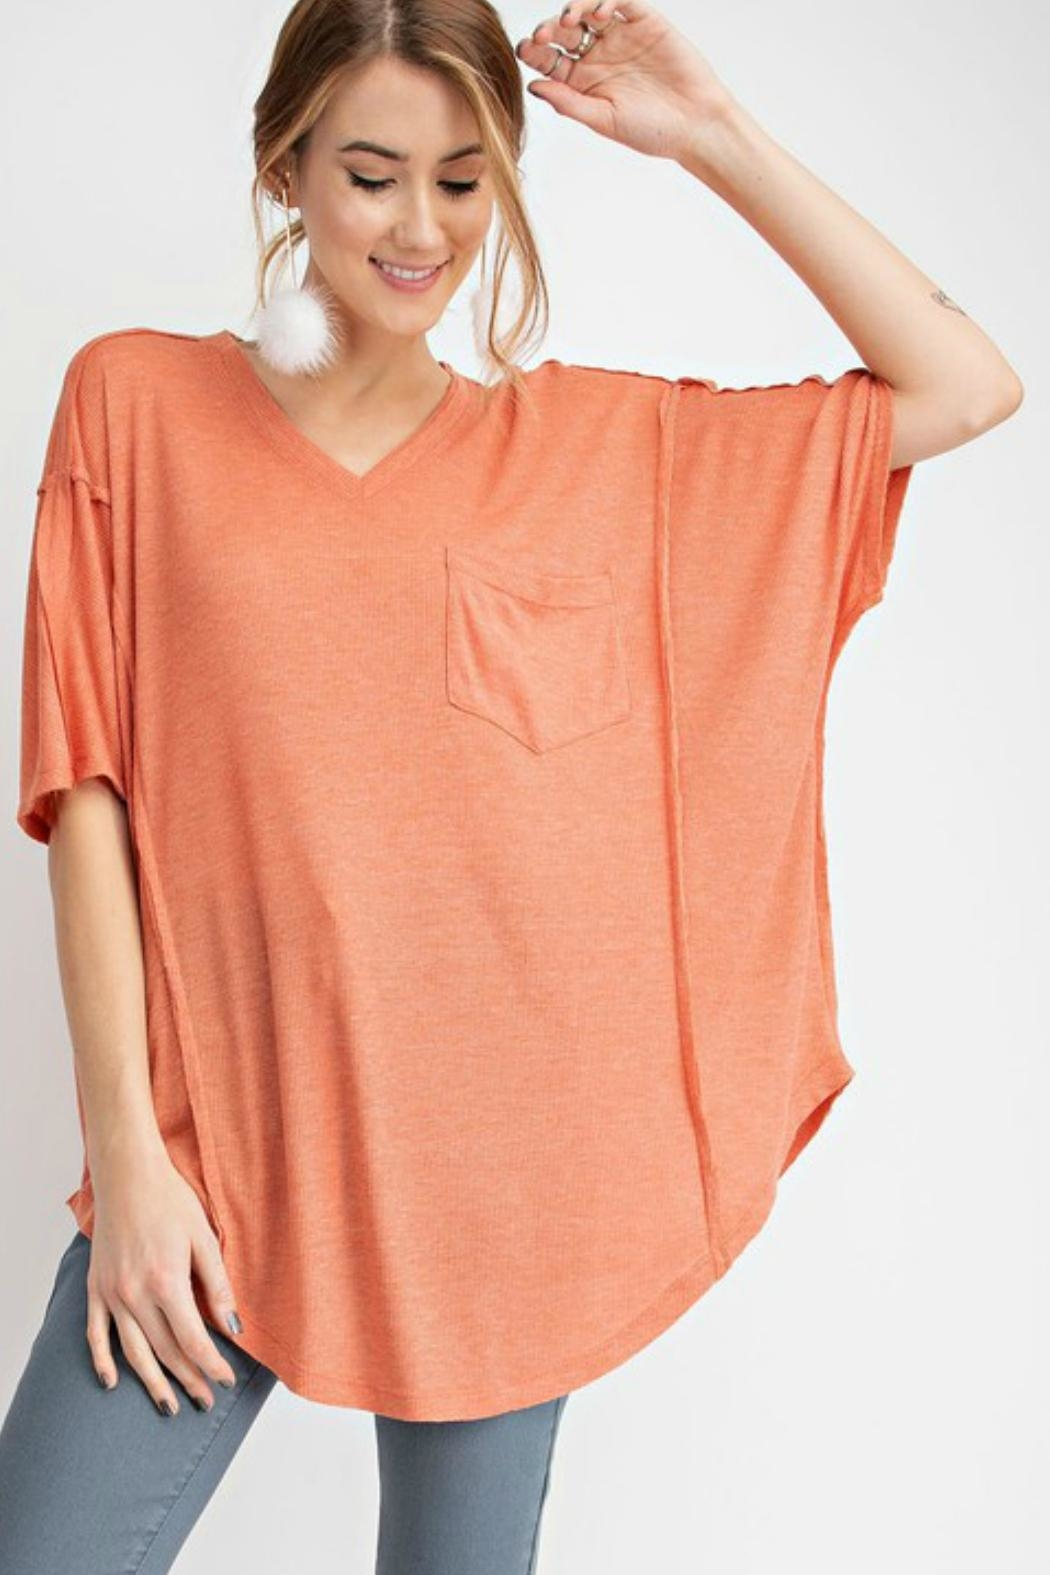 62b174776b4 easel V-Neck Tunic Top from Texas by Ale's Closet — Shoptiques